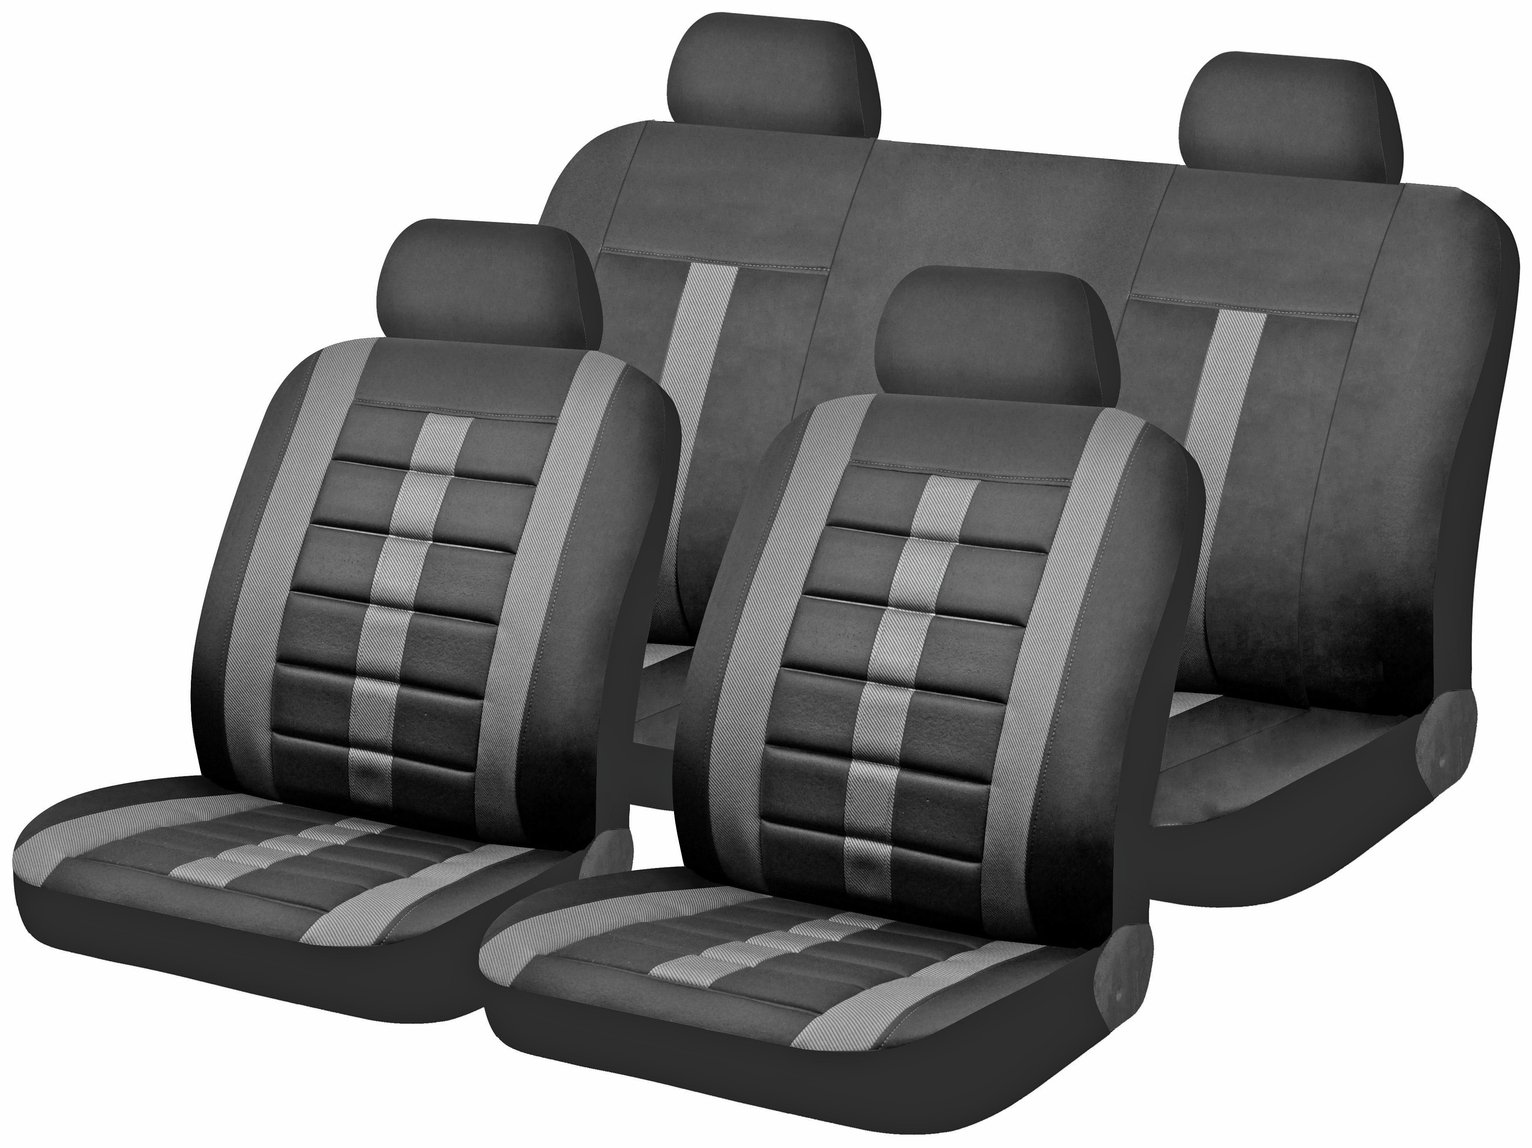 Lumbar Foam Support Car Seat Covers - Black